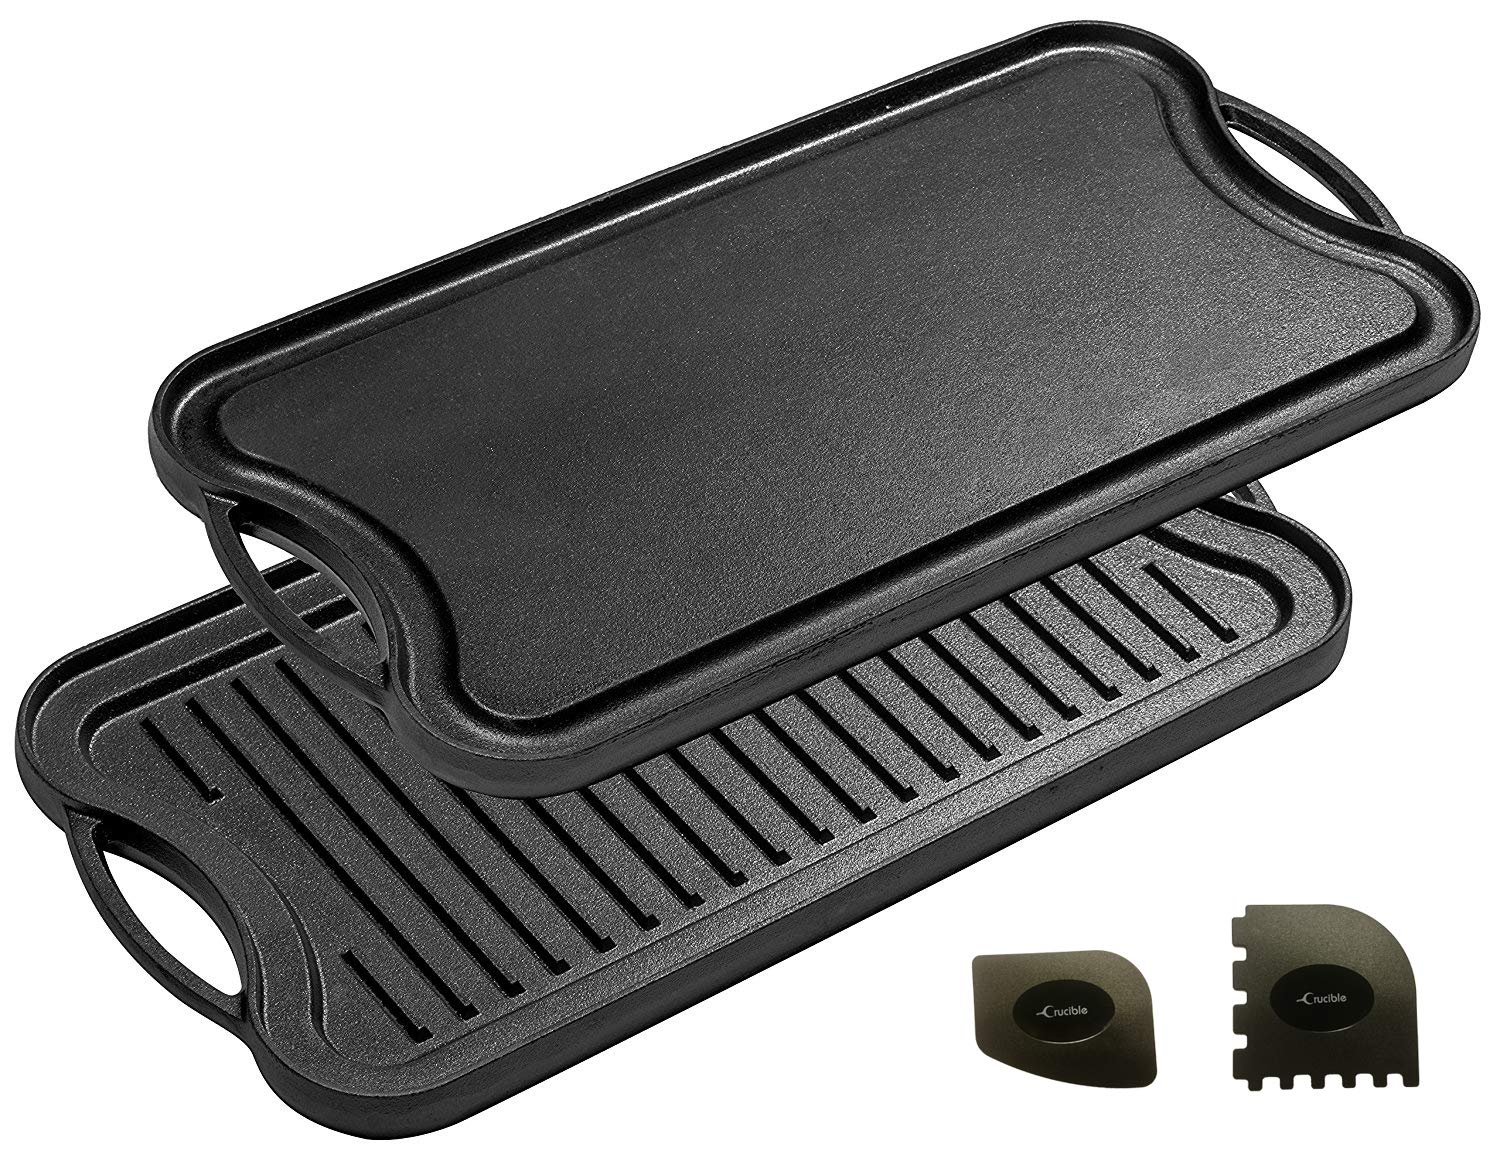 Cast Iron Griddle (20'' by 10''), Reversible, Pre-Seasoned, Grill and Griddle Combo, BBQ, Campfire, fits over two stovetop burners